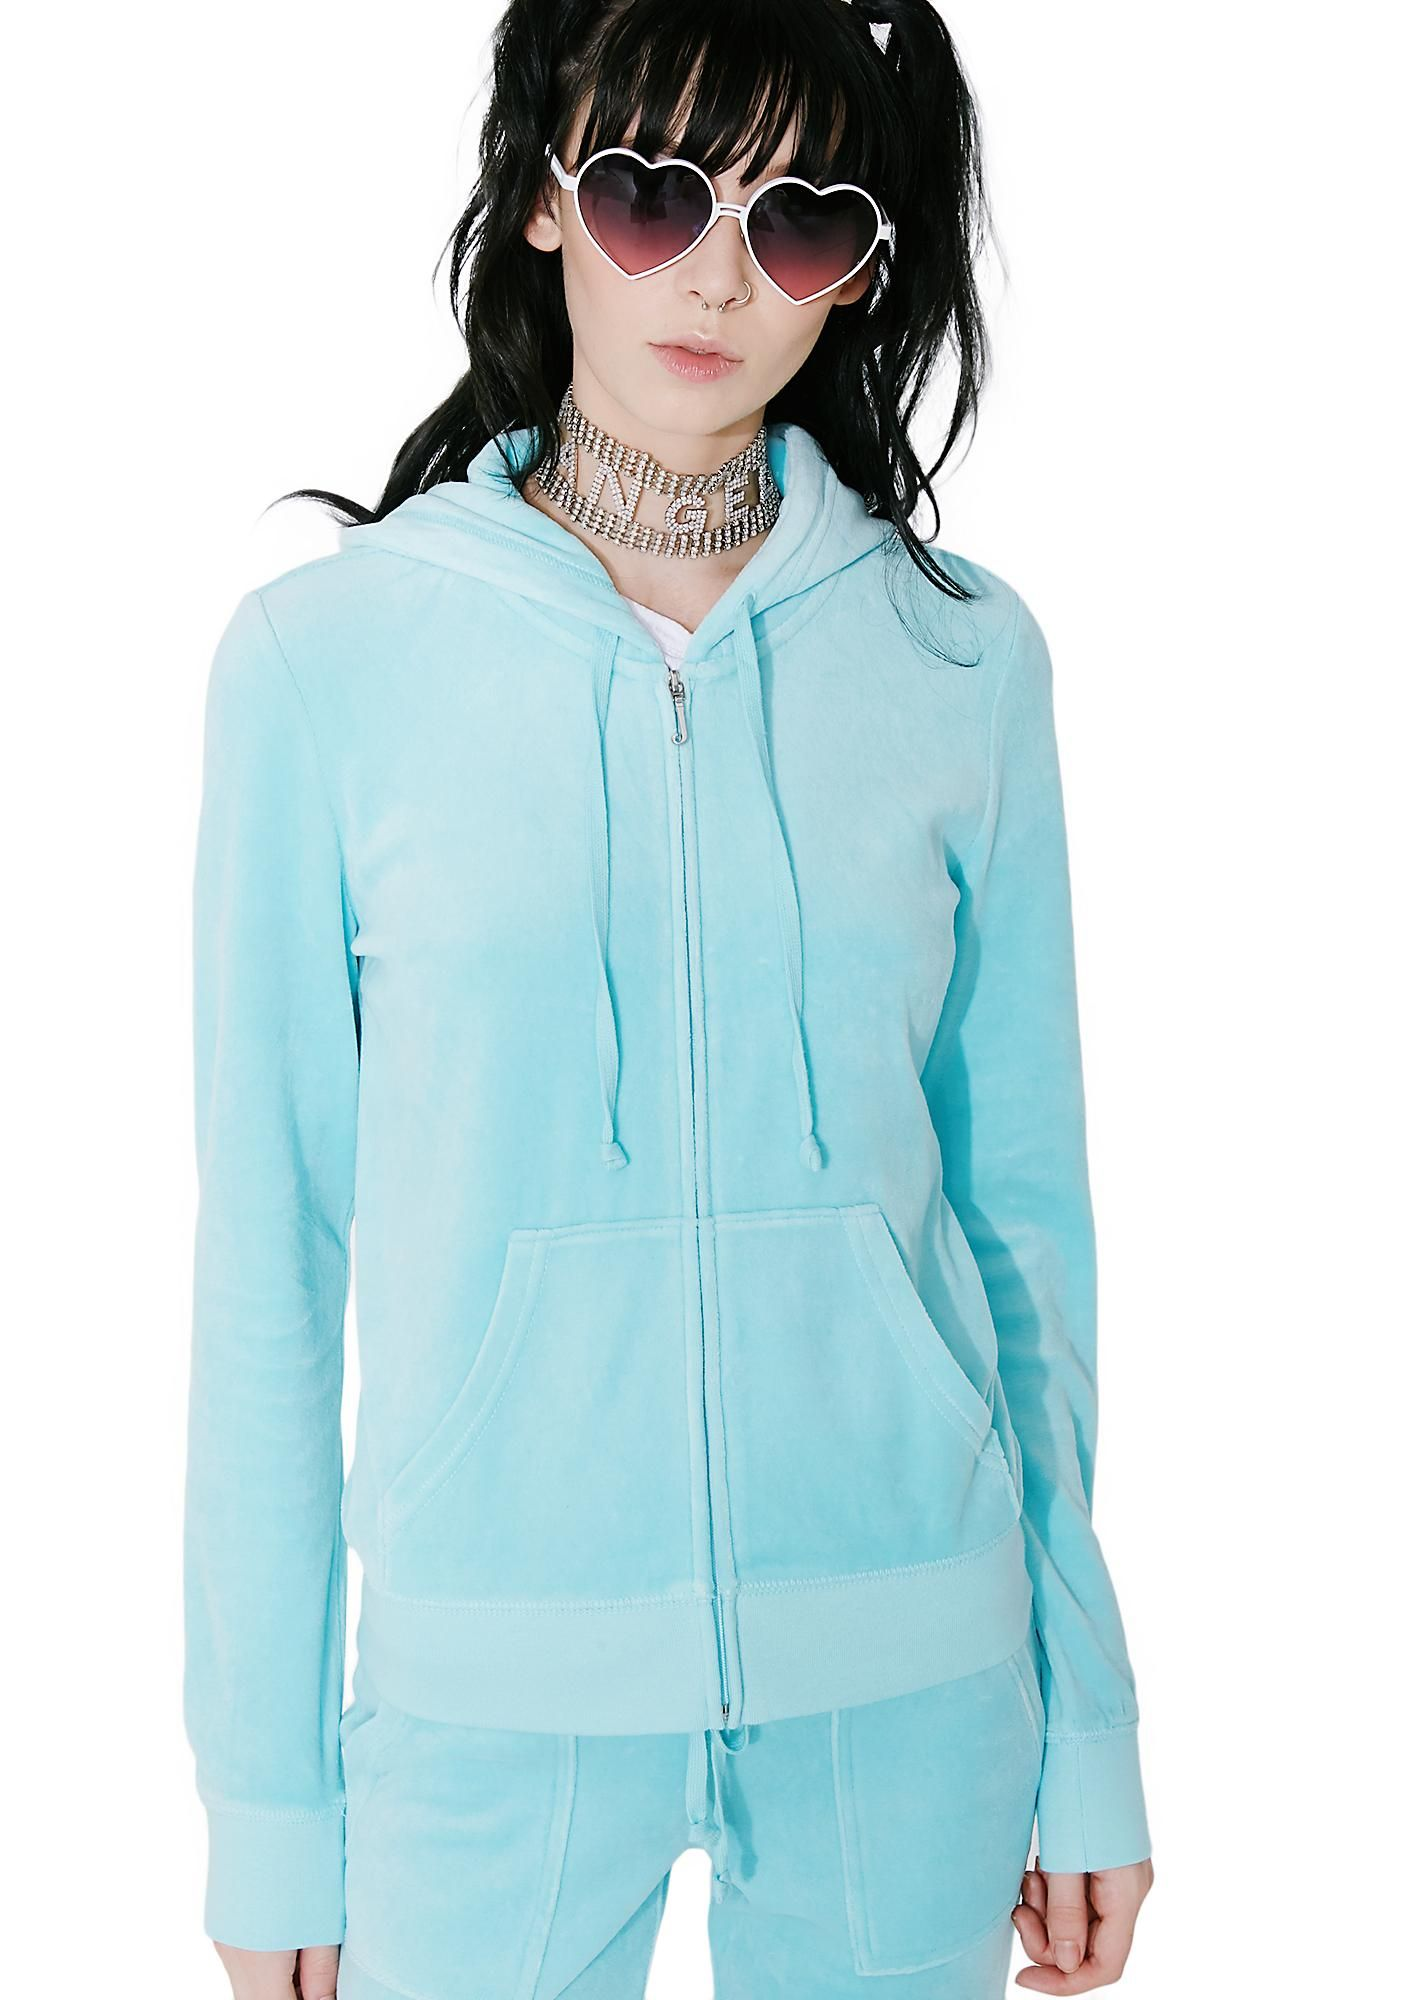 Juicy Couture Sky Robertson Velour Jacket Wants Ya To Feel Like A 00 S It Girl This Comfy Light Blue Jacket Has Velour Jackets Comfy Jackets Light Blue Jacket